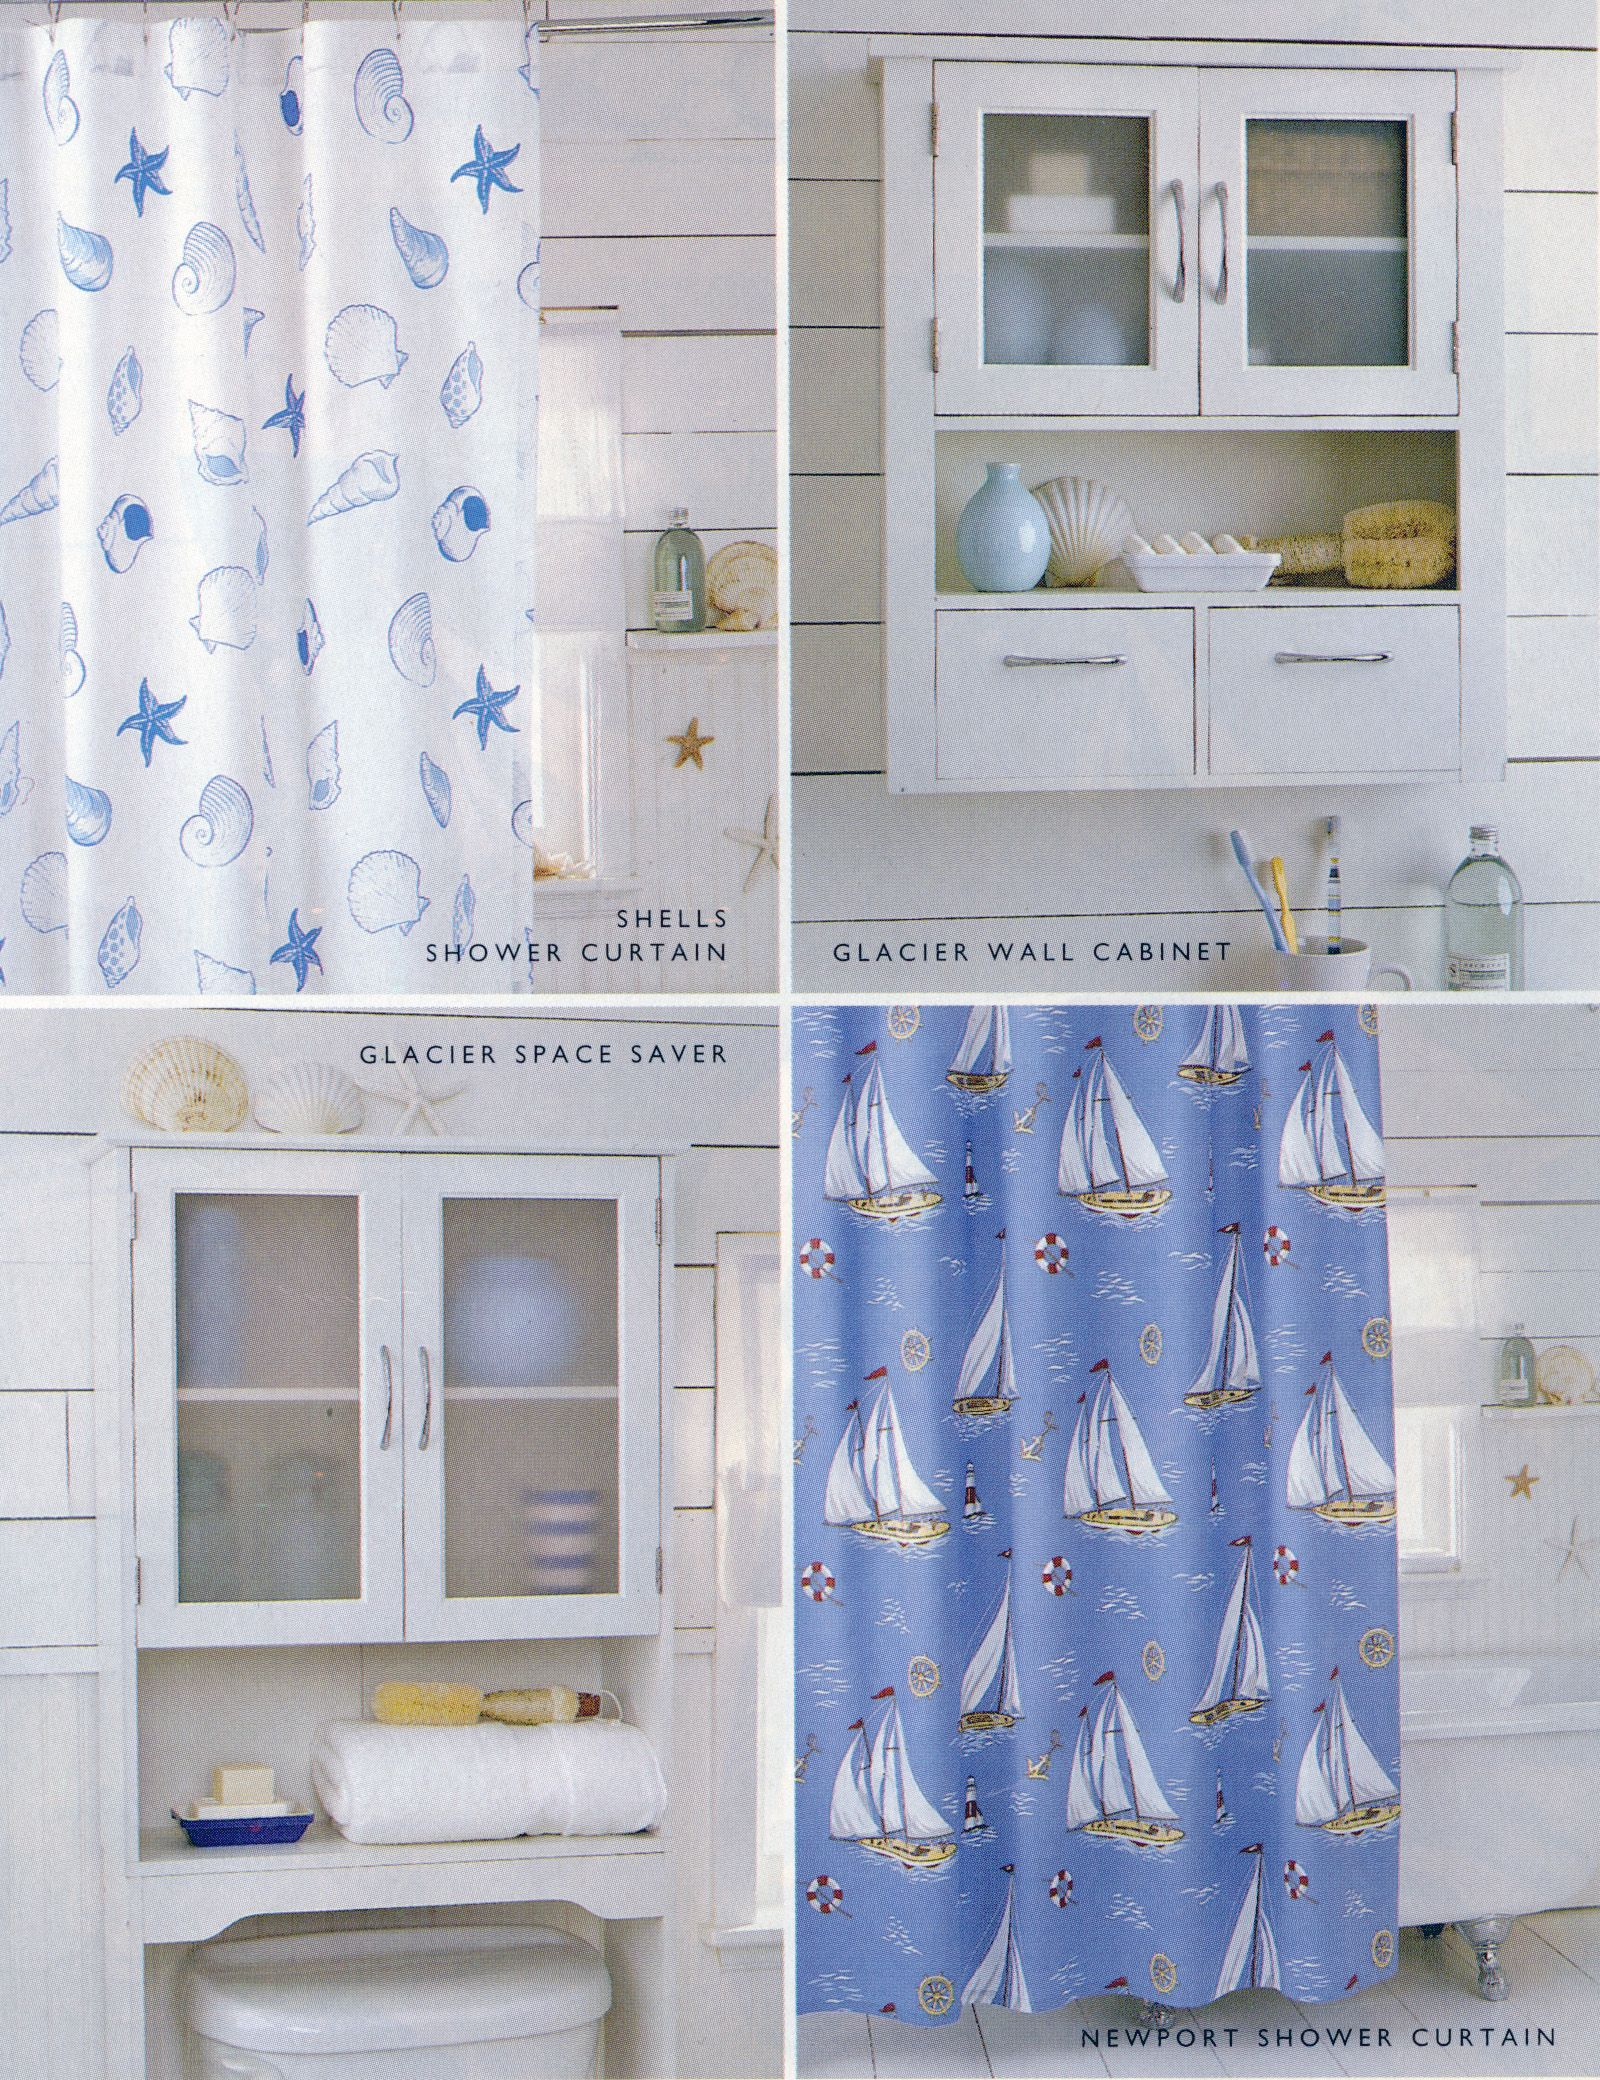 Bathroom Shower Curtains And Accessories Nautical Themed Bathroom Accessories Including Newport